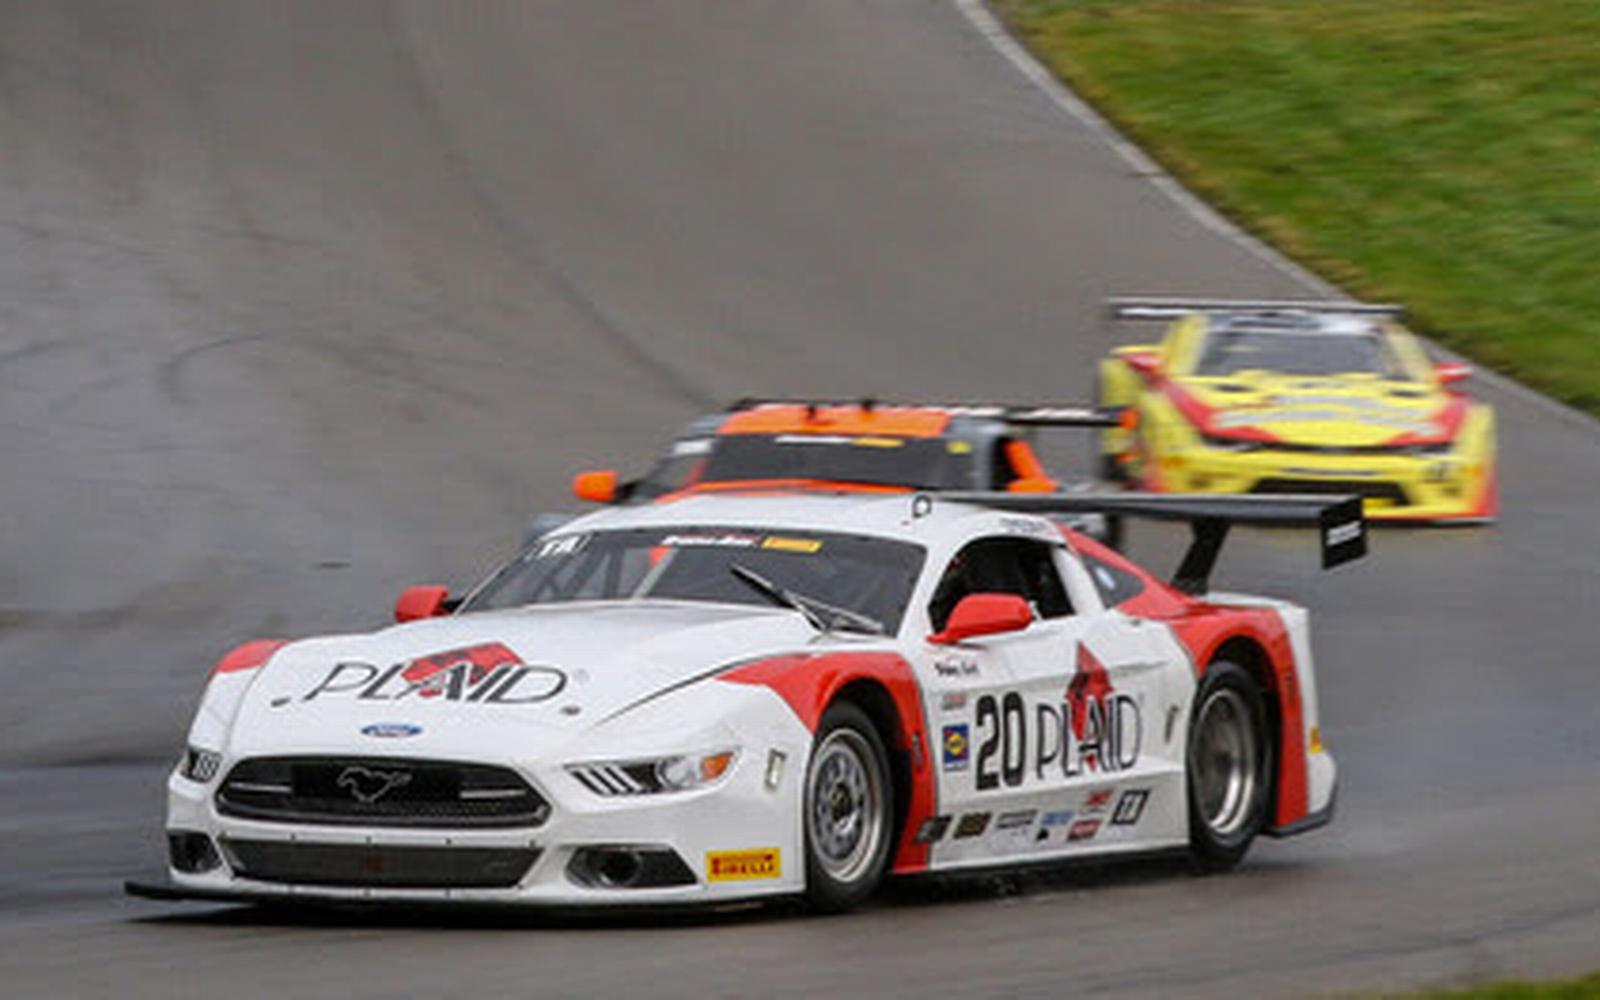 DYSON SALVAGES PODIUM FINISH AFTER PIT STOP ISSUE BLUNTS DRIVE FOR MID-OHIO TRANS AM WIN